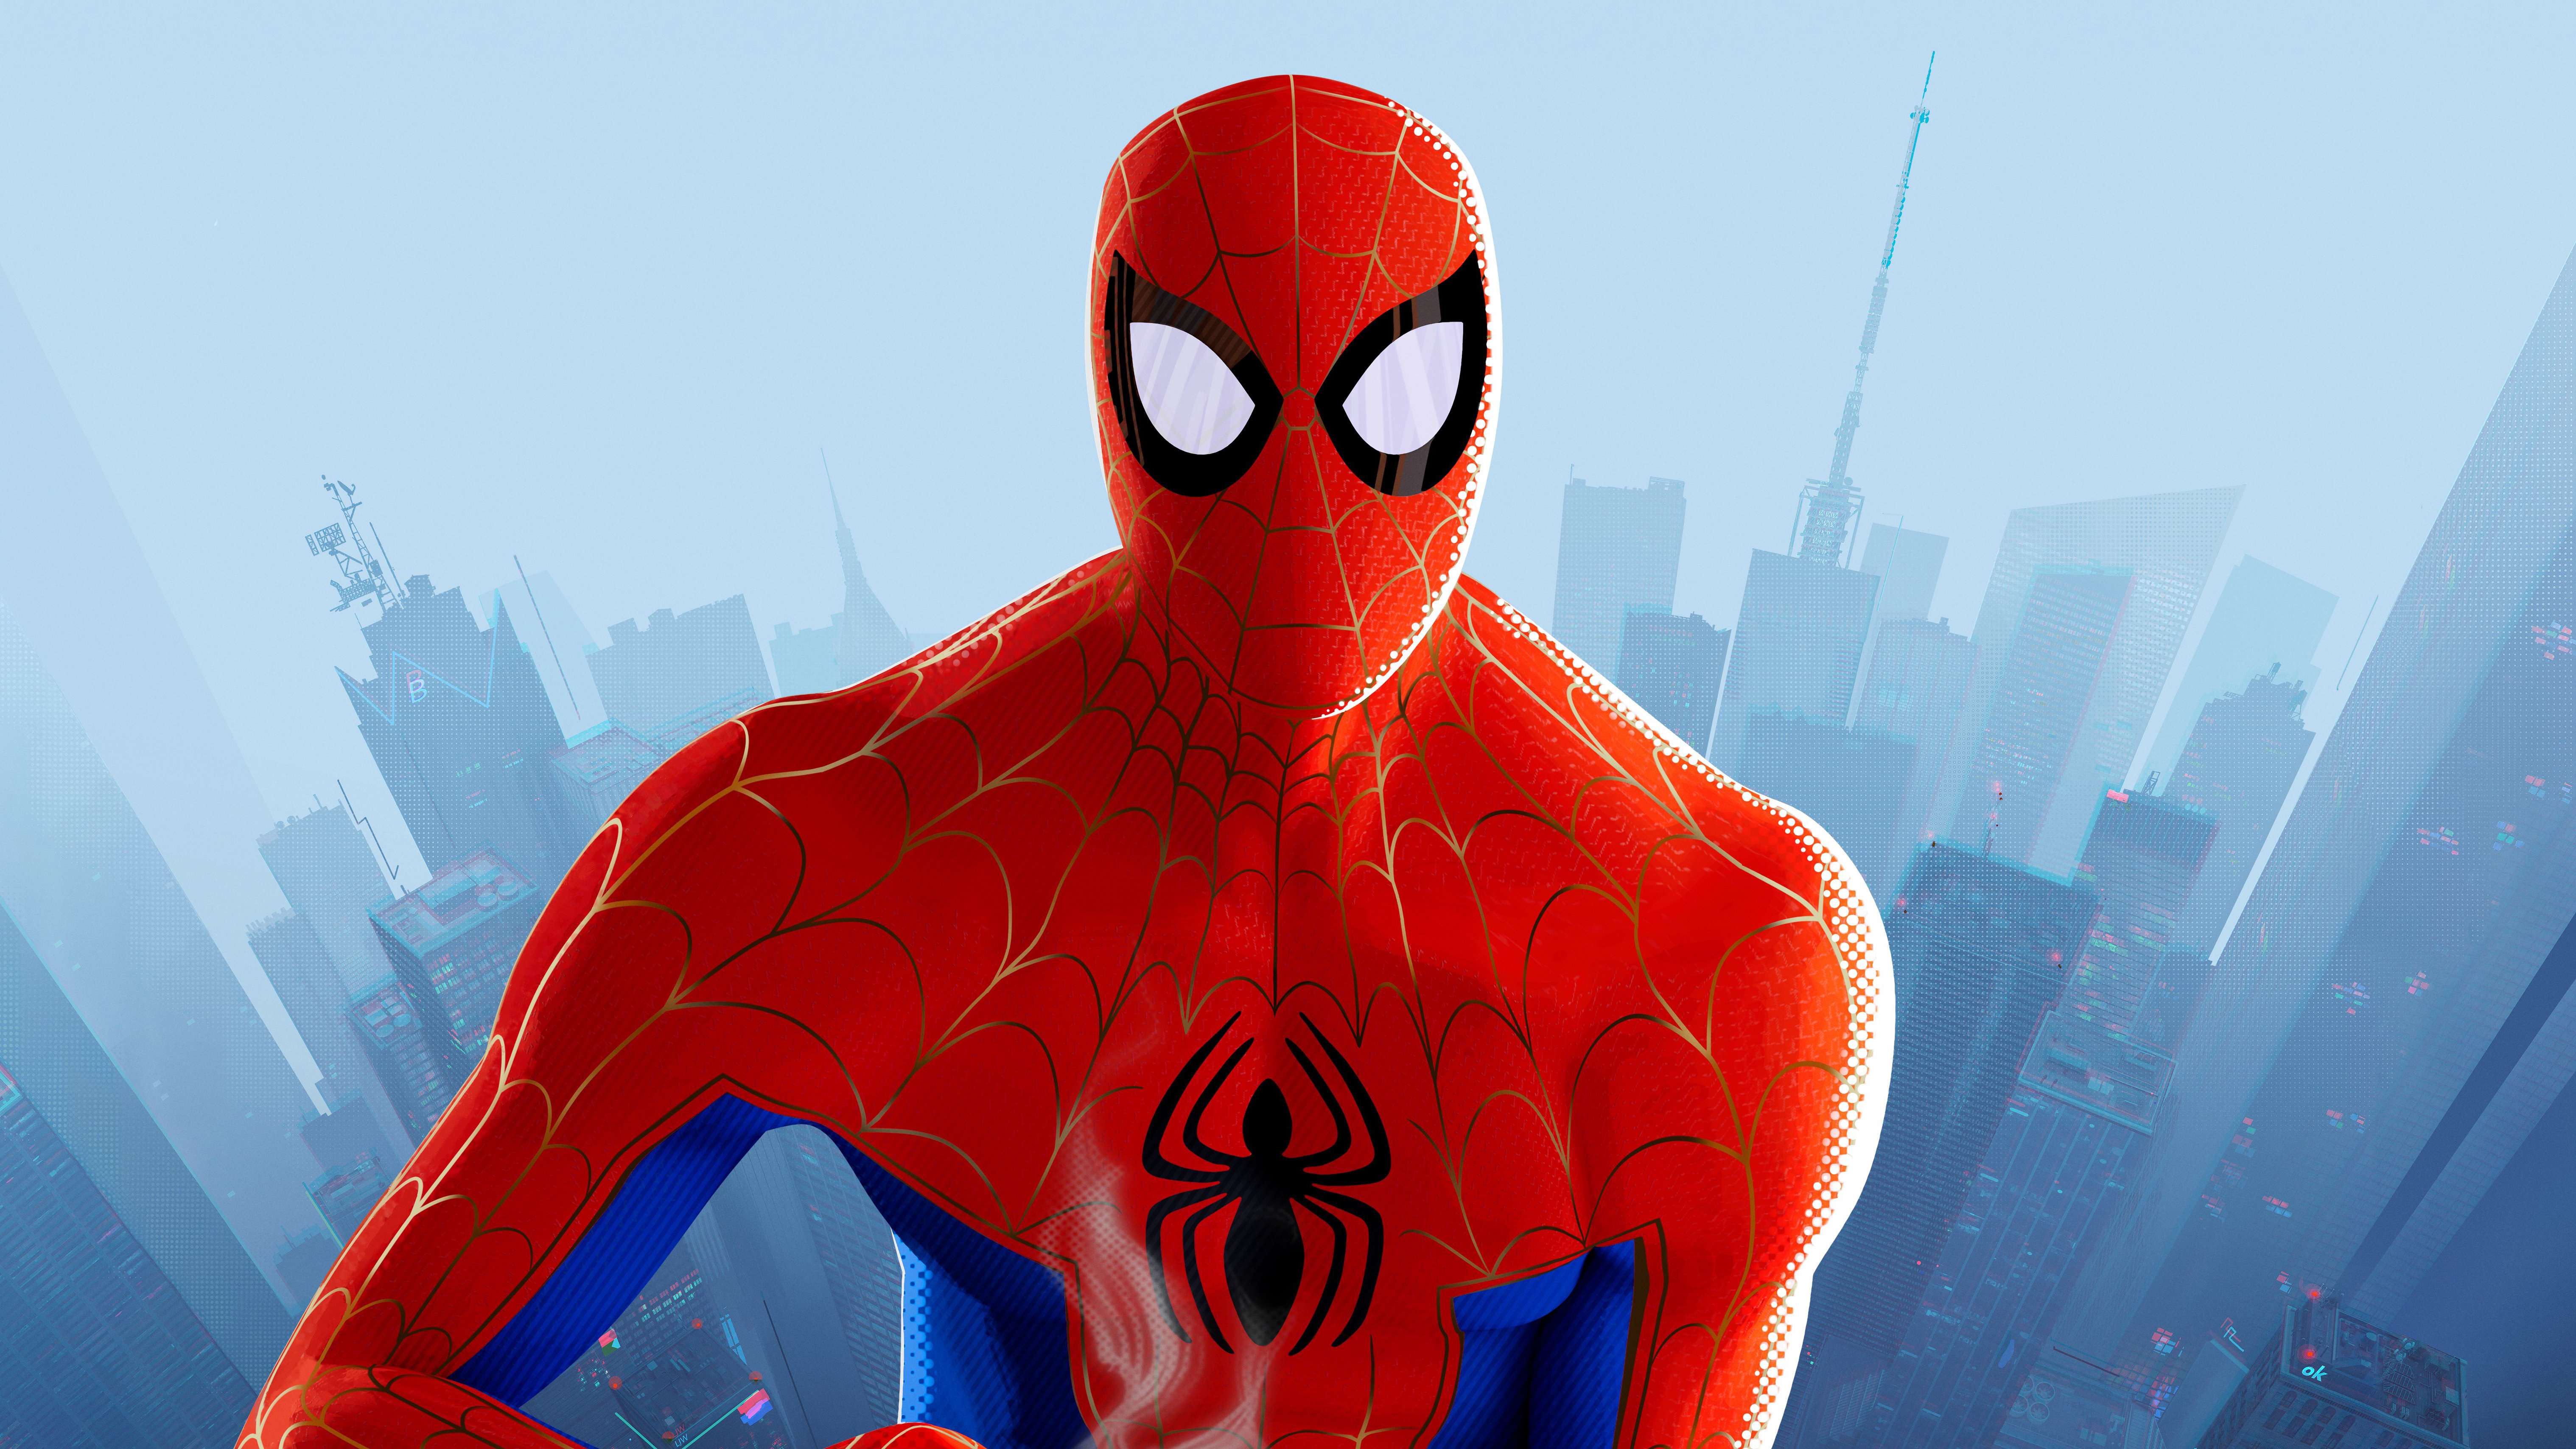 1280x2120 Pubg Game Girl Fanart Iphone 6 Hd 4k Wallpapers: 1280x2120 Peter Parker In SpiderMan Into The Spider Verse